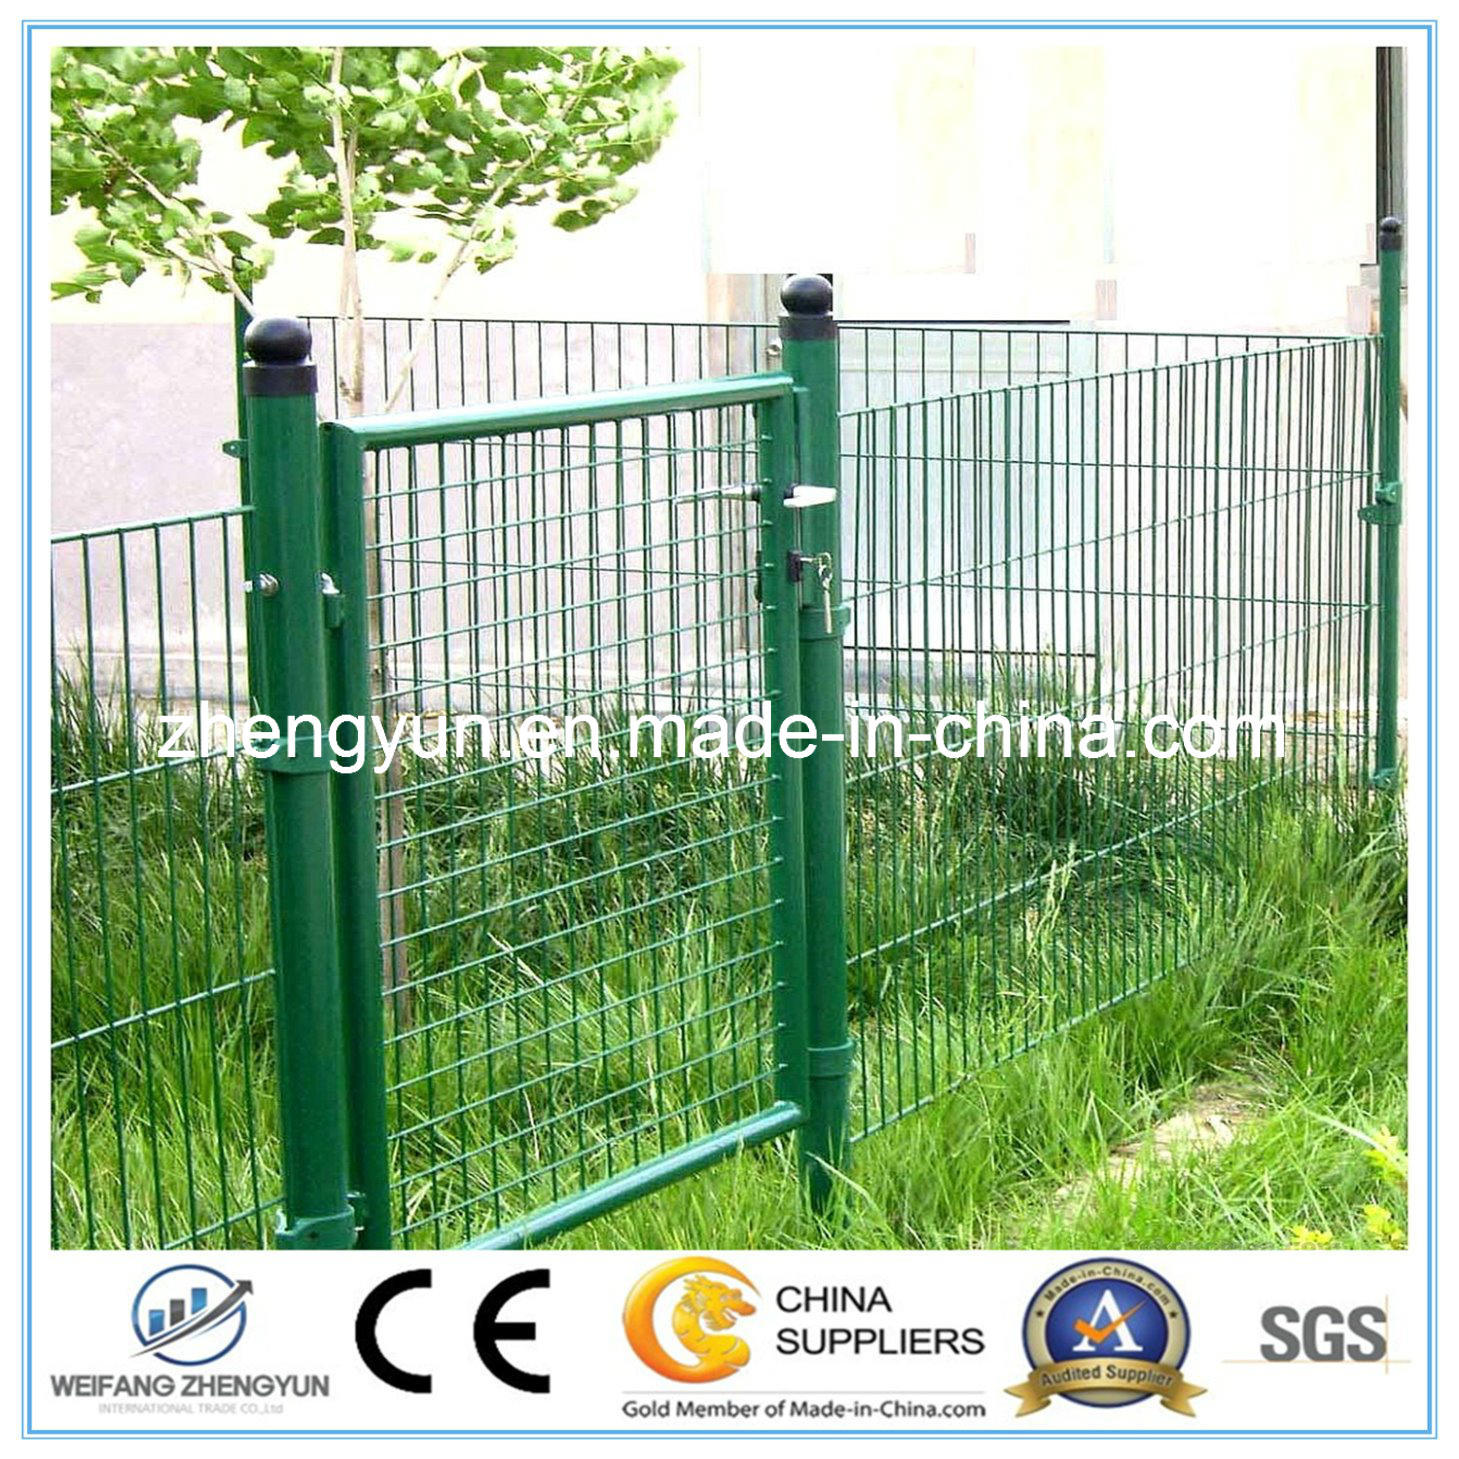 The PVC Coated Chain Link Wire Mesh Fence Gate